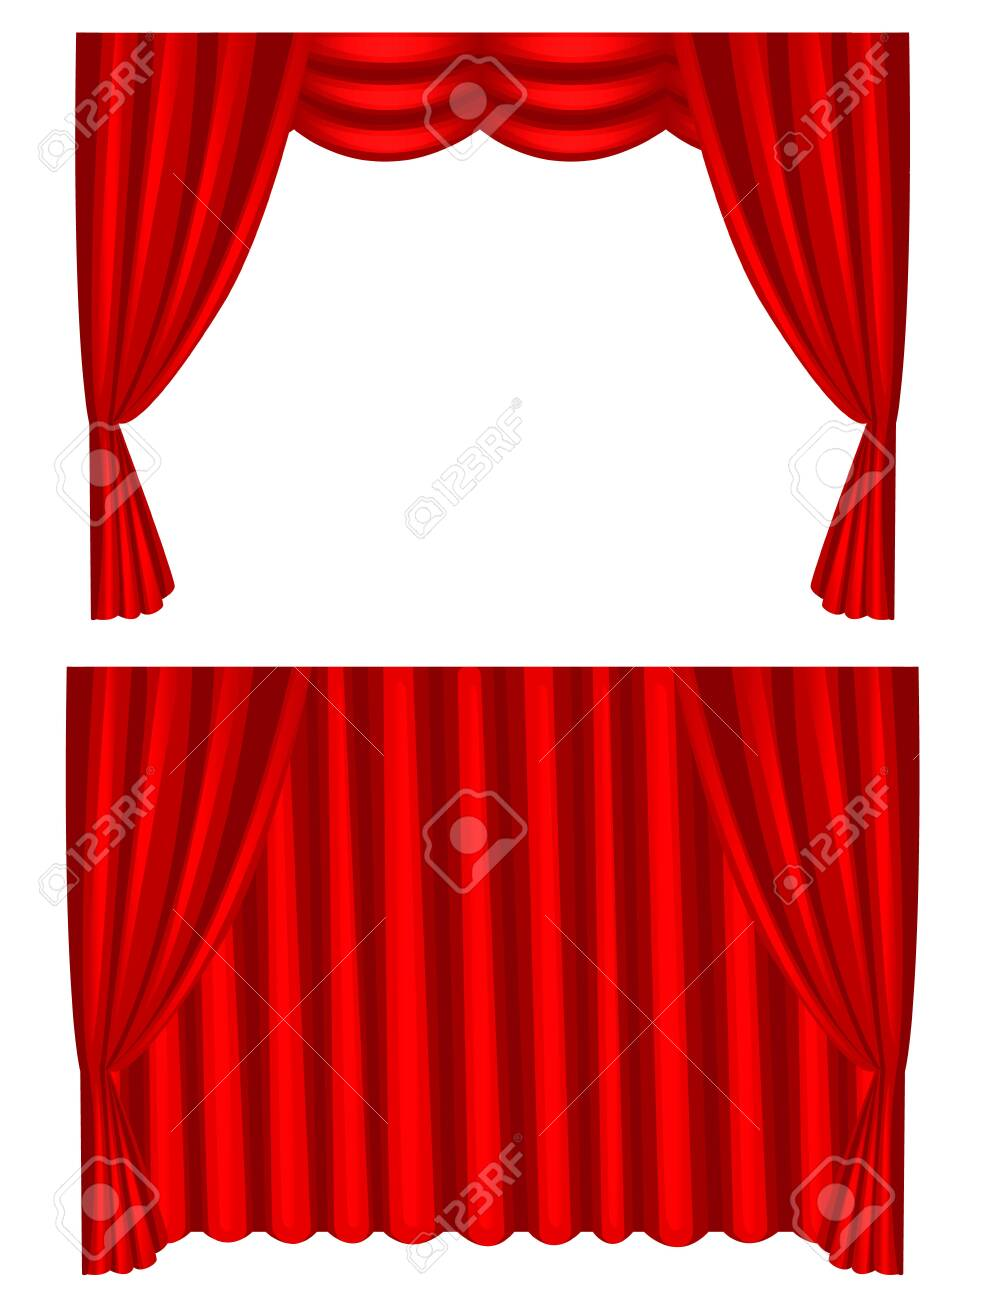 Red Velvet Curtains and Drapes Curtains Panels Nightclub or | Etsy